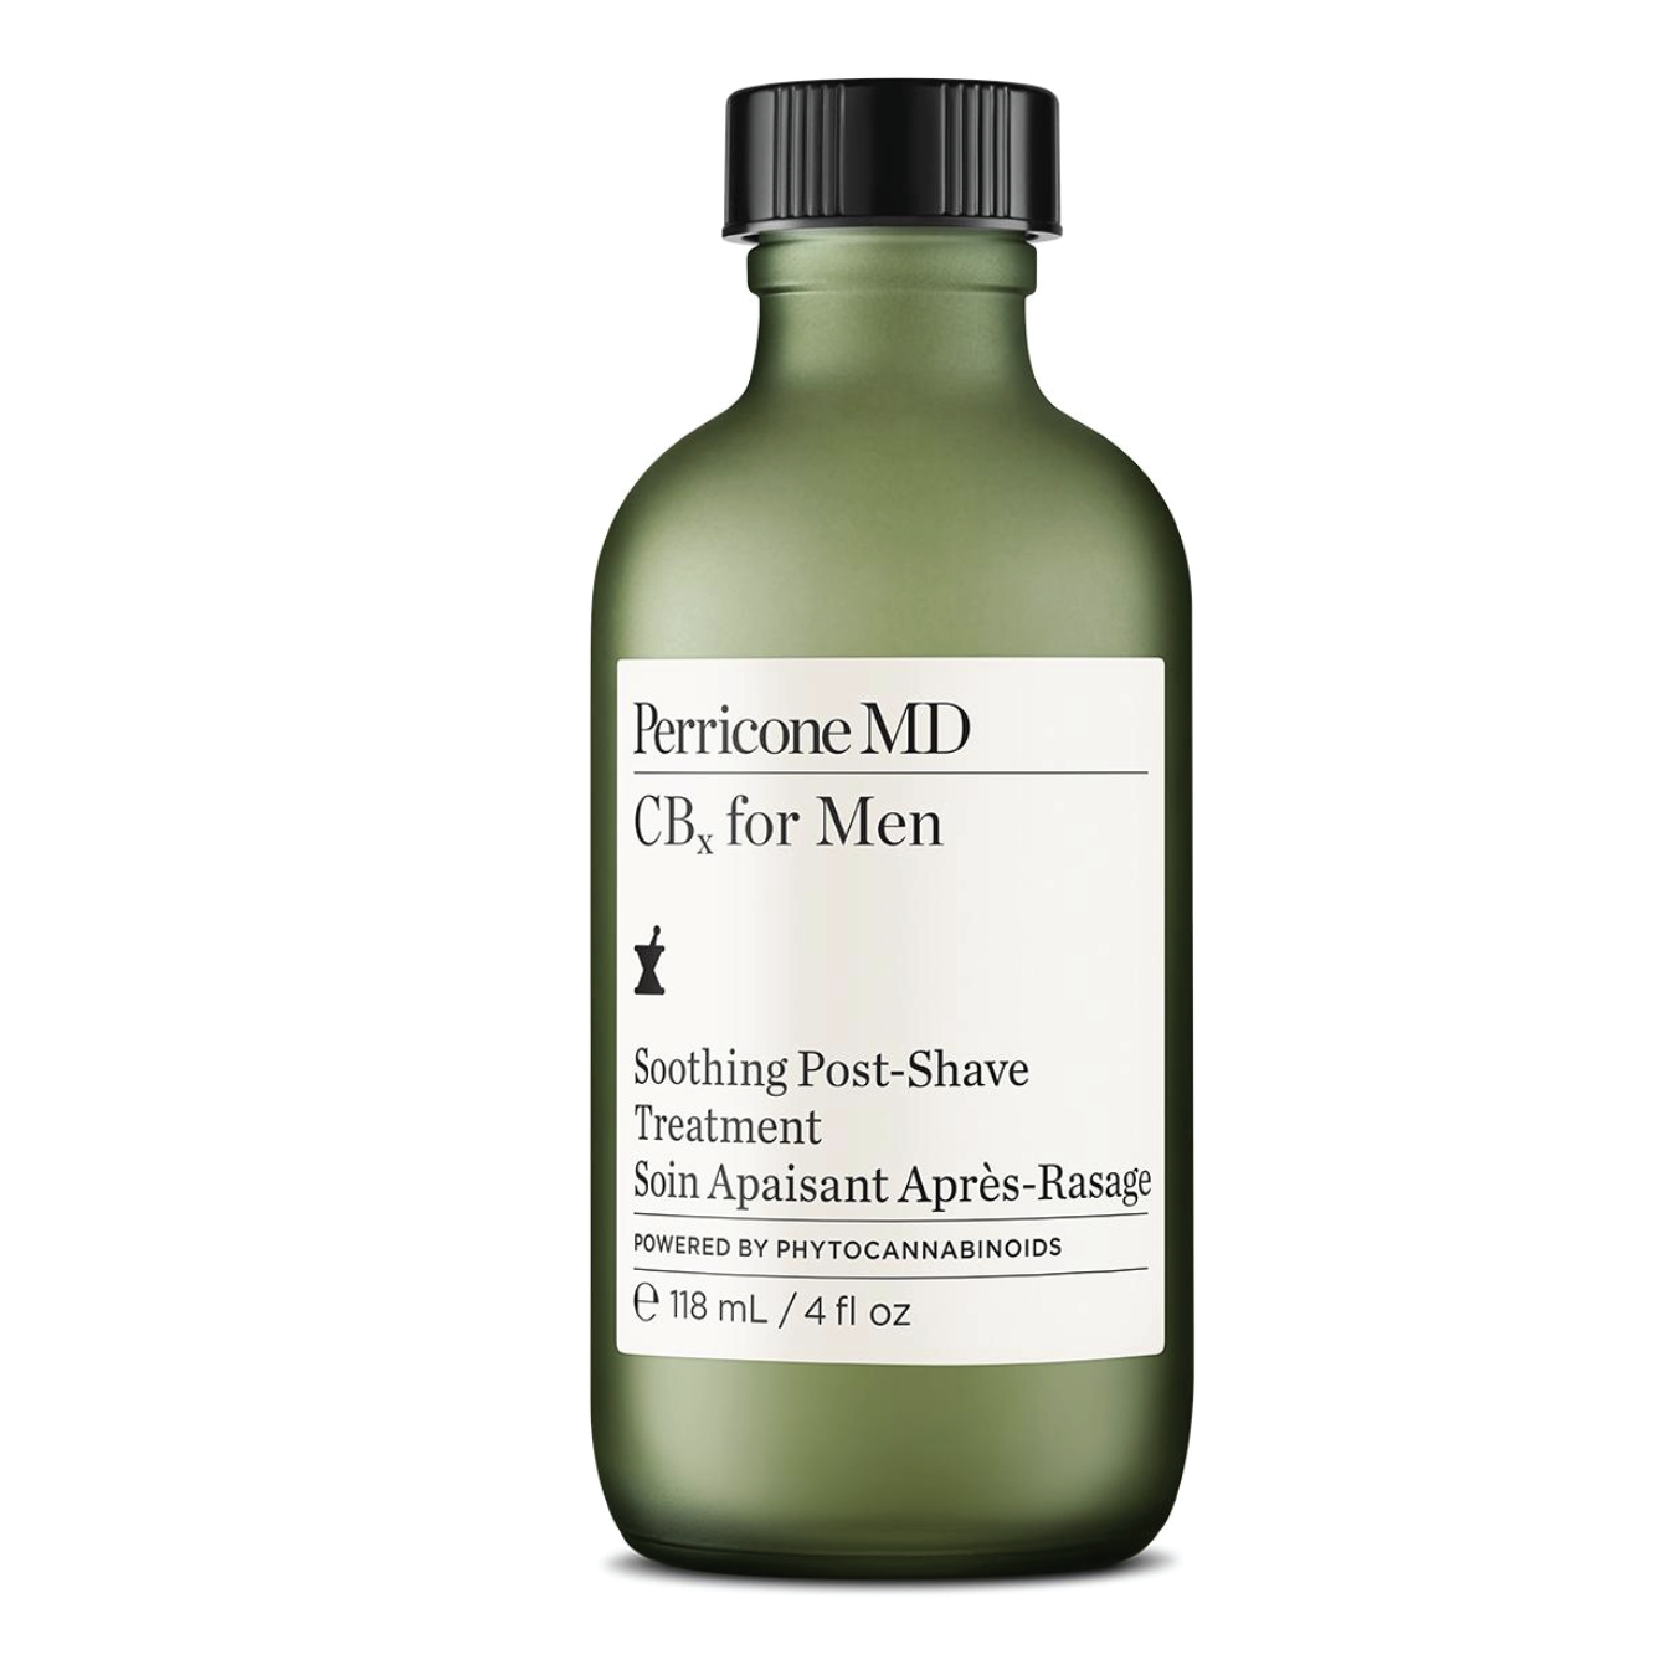 Perricone MD Soothing Post-Shave Treatment - $45 at Perricone MDThis cannabidoil formula is extremely soothing and gentle, and perfect for someone interested in trying out CBD grooming products (no THC!).